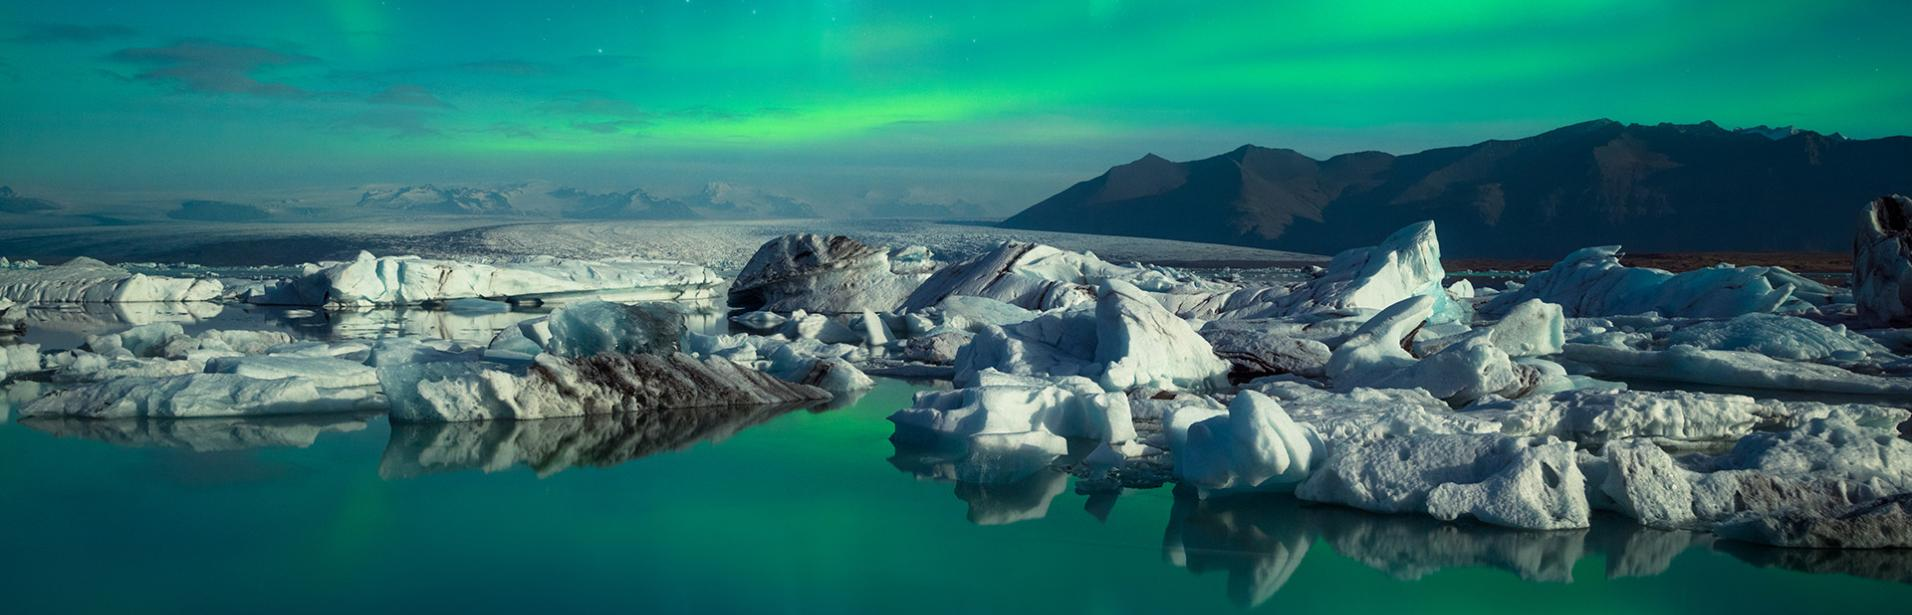 Iceland northern lights tour package: glaciar lagoon Jökursarlon in northern lights, south east of Iceland.